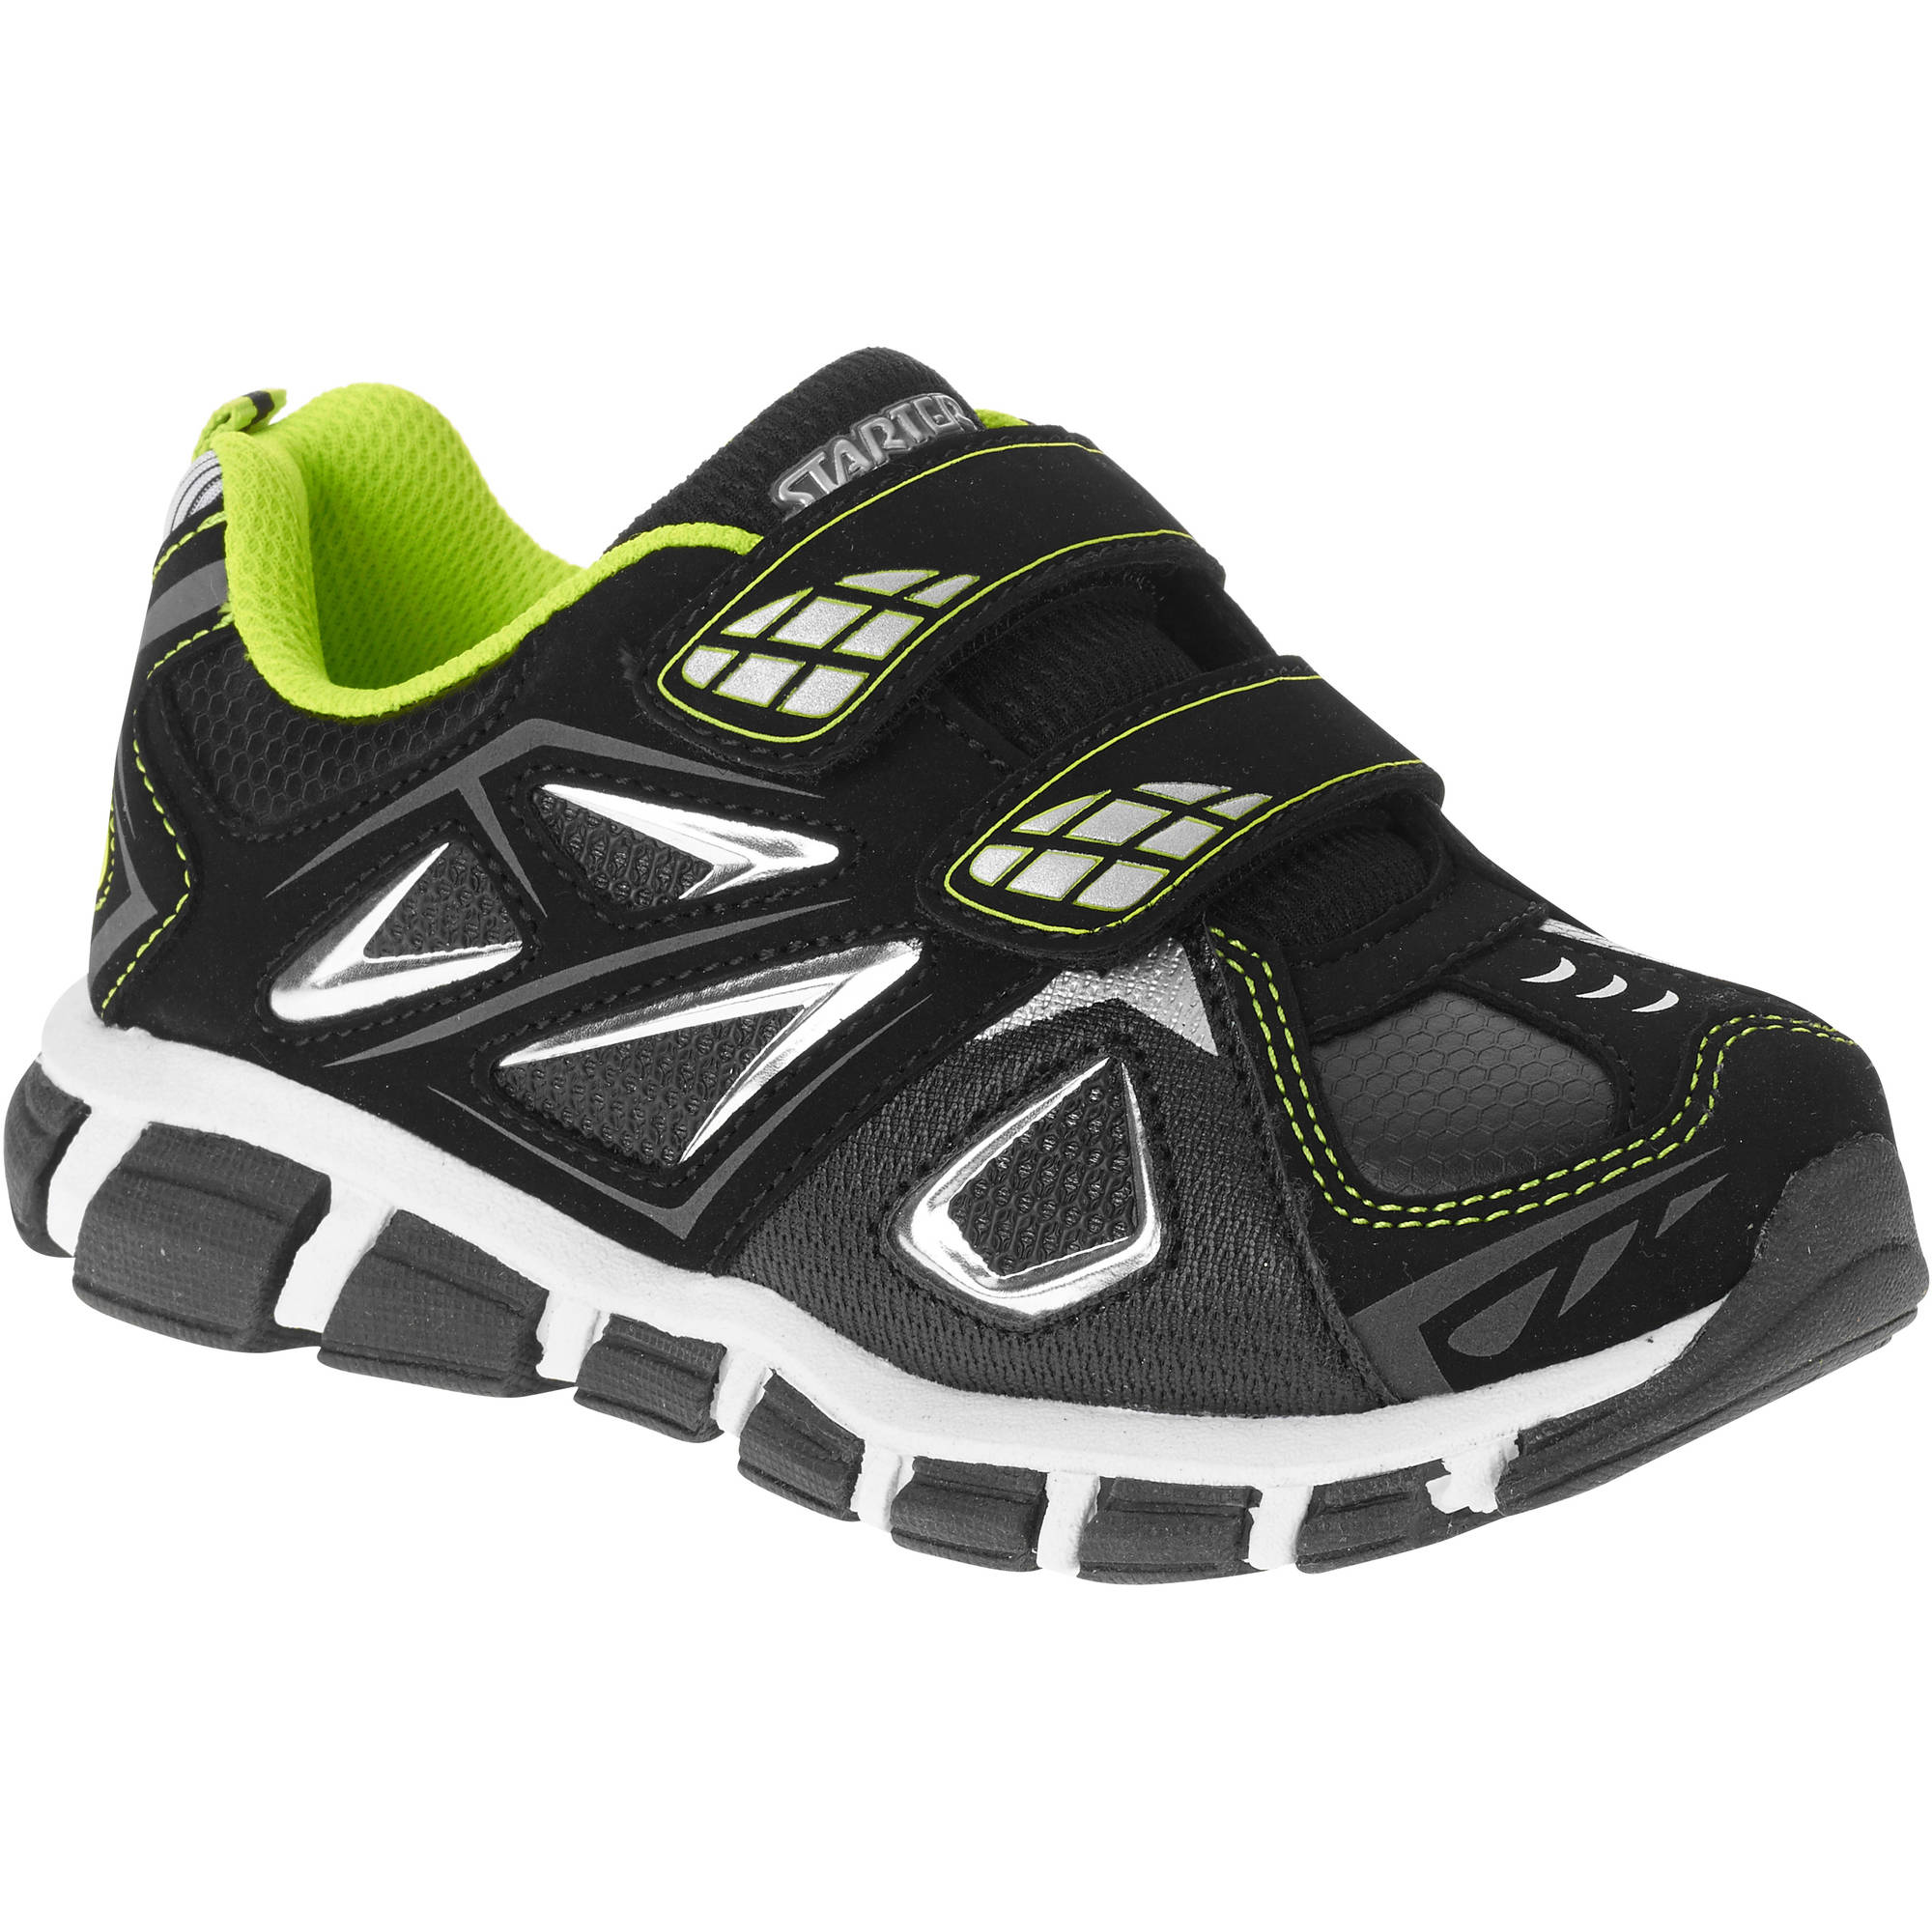 Starter Boys' 2 Strap Athletic Shoe